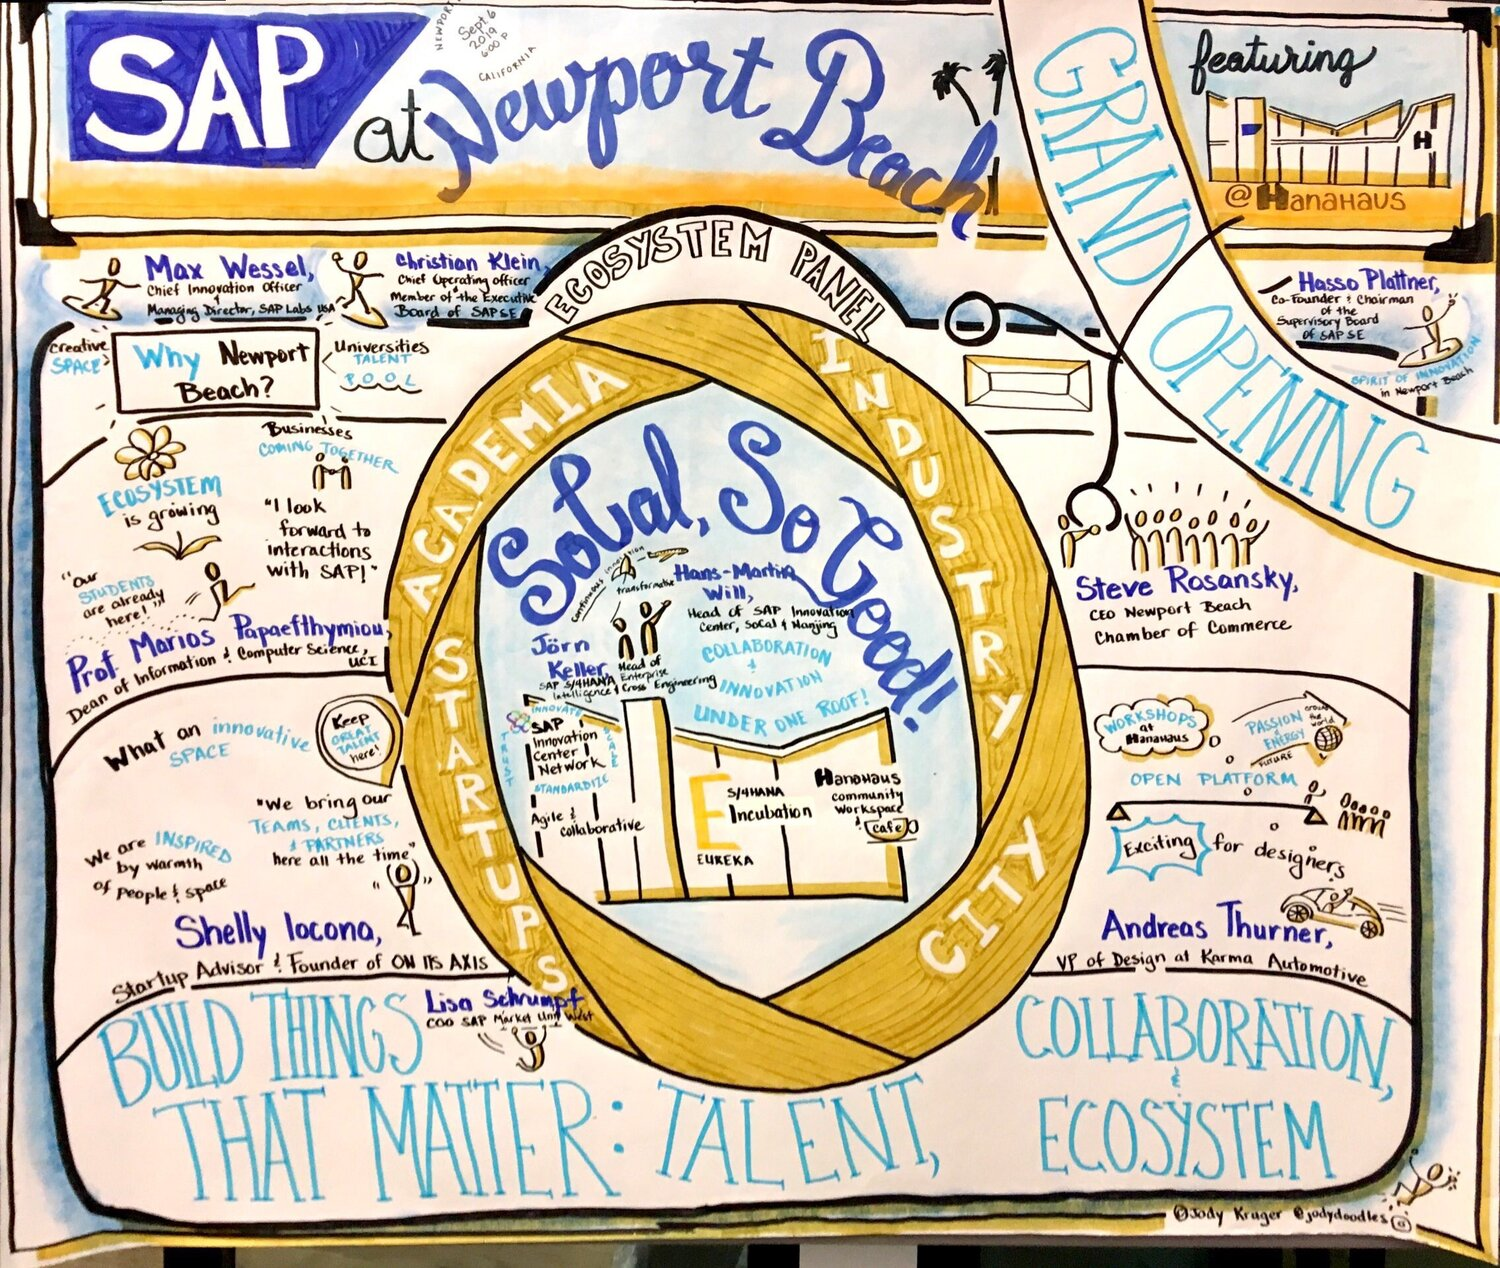 Please have a look at the graphic recording of the opening celebration.